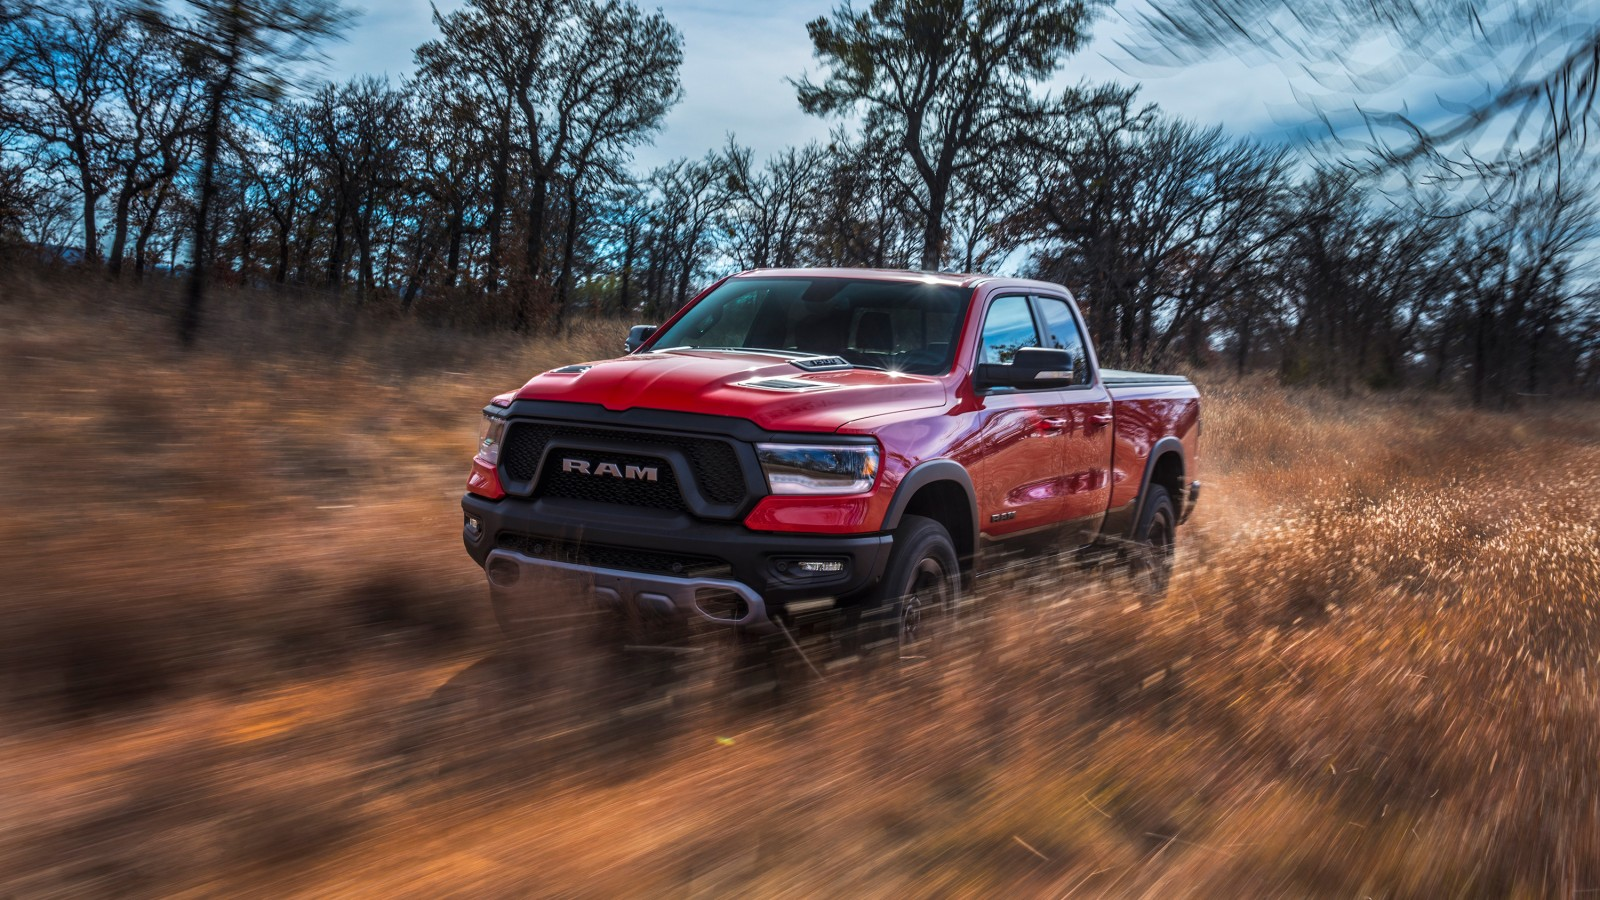 2016 Ram 1500 >> 2019 Ram 1500 Rebel Quad Cab 2 Wallpaper | HD Car Wallpapers | ID #9407